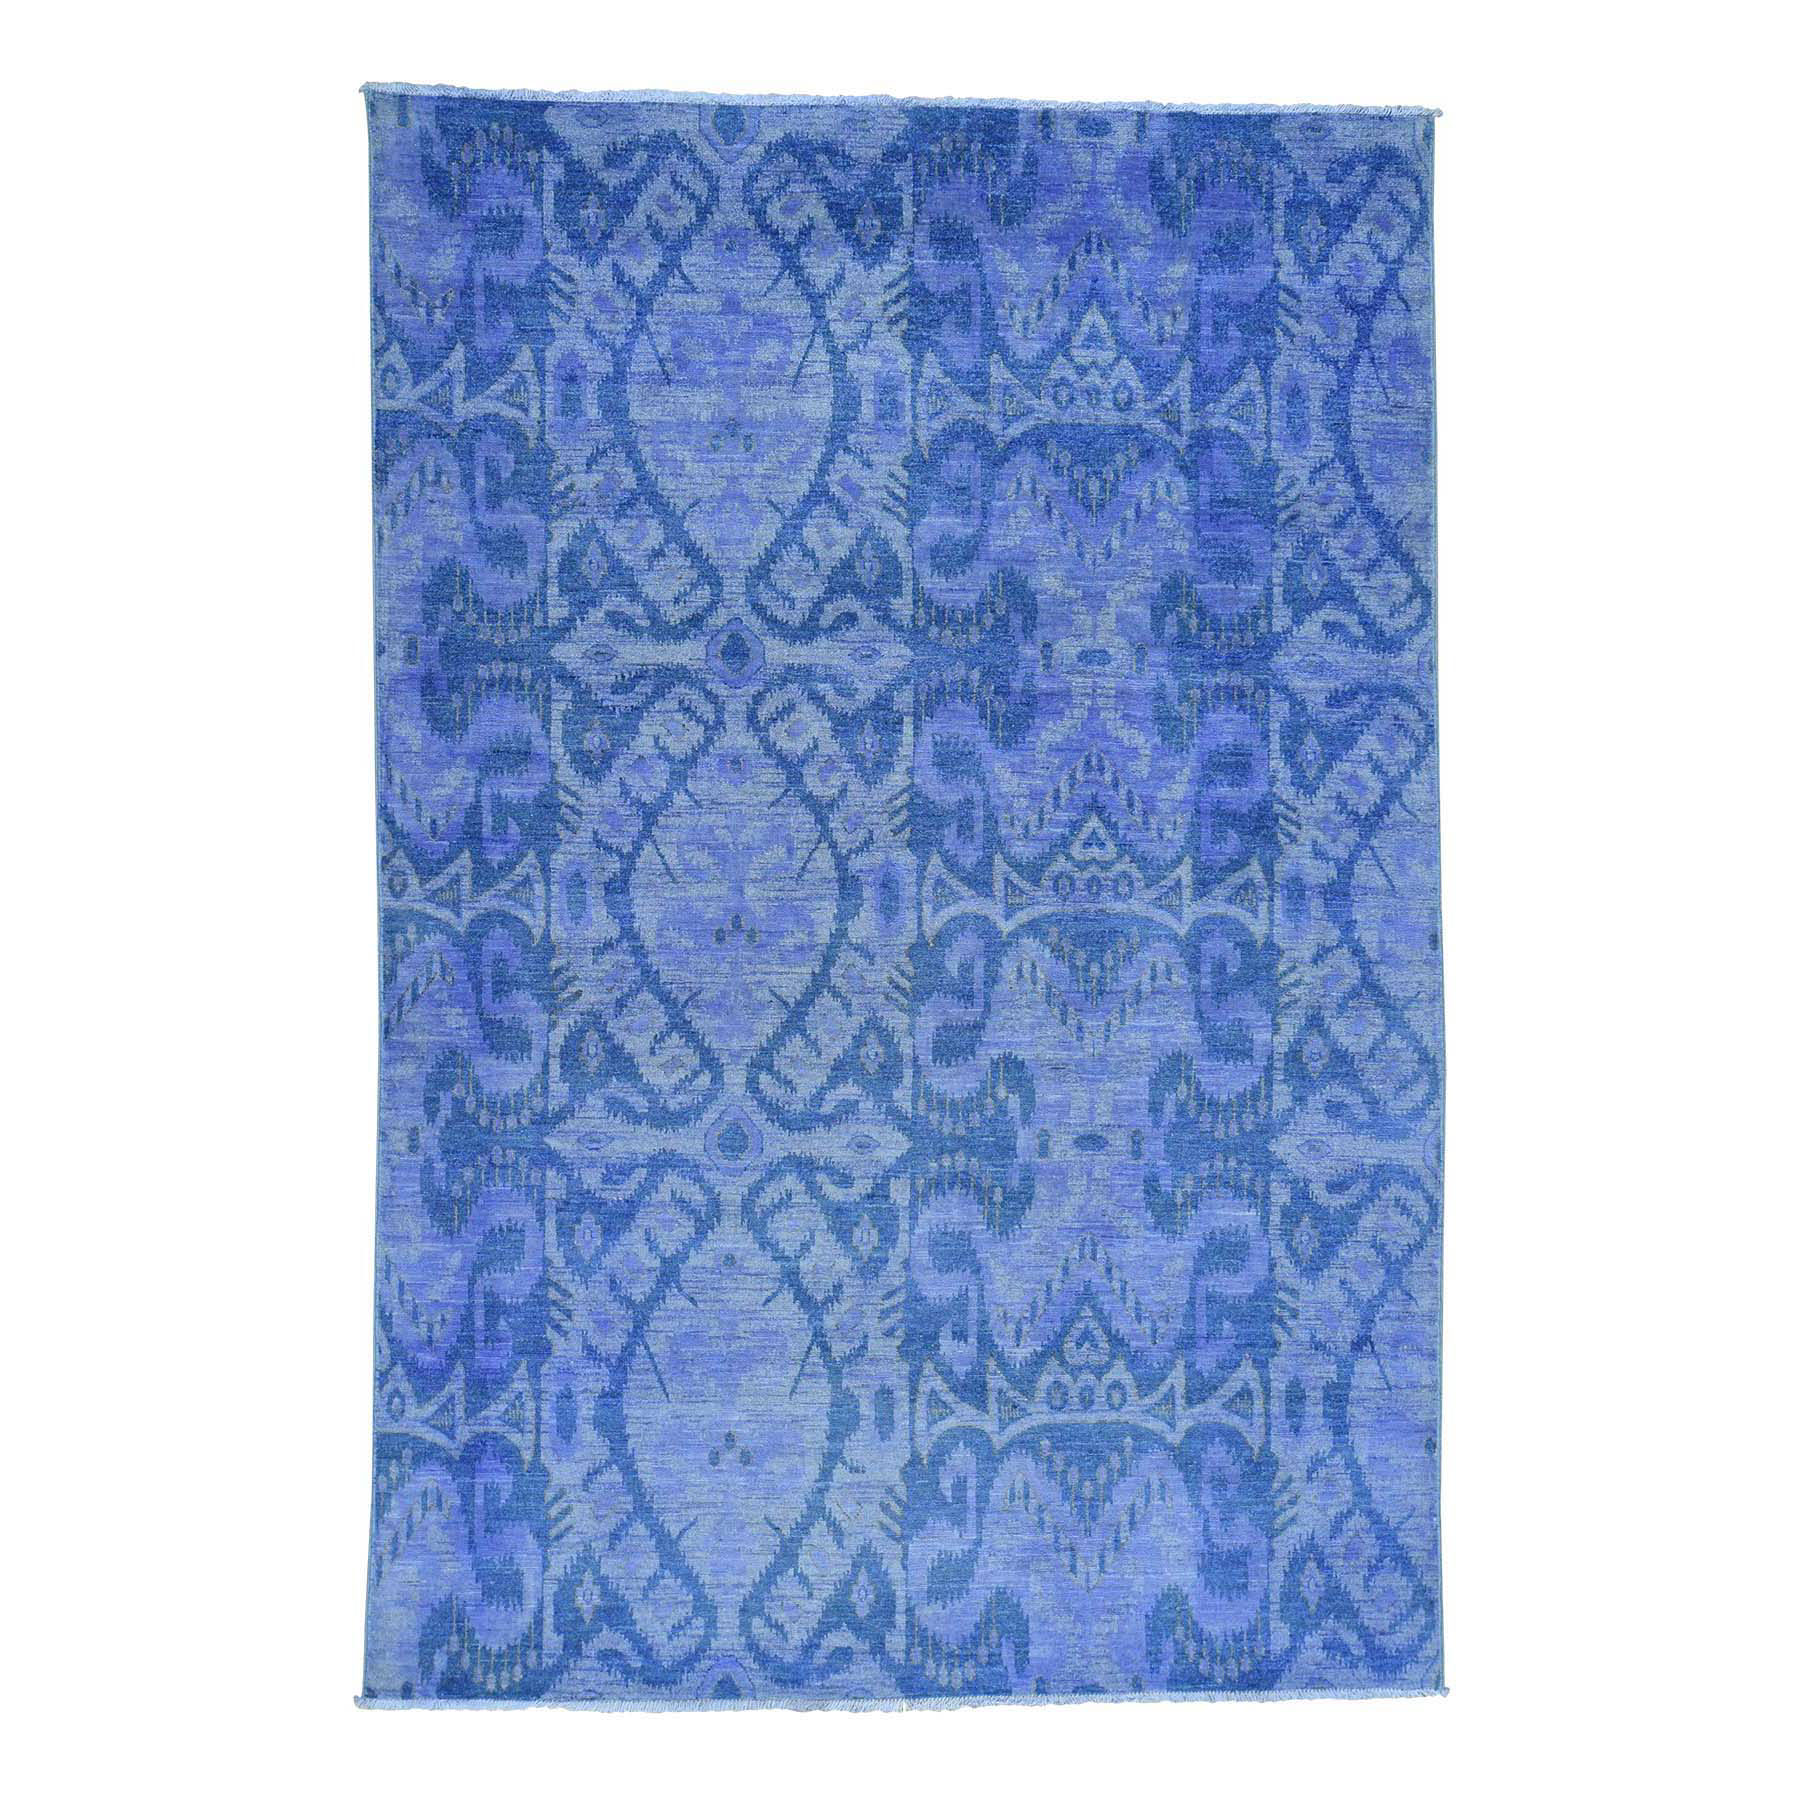 overdyed & vintage rugs LUV315441